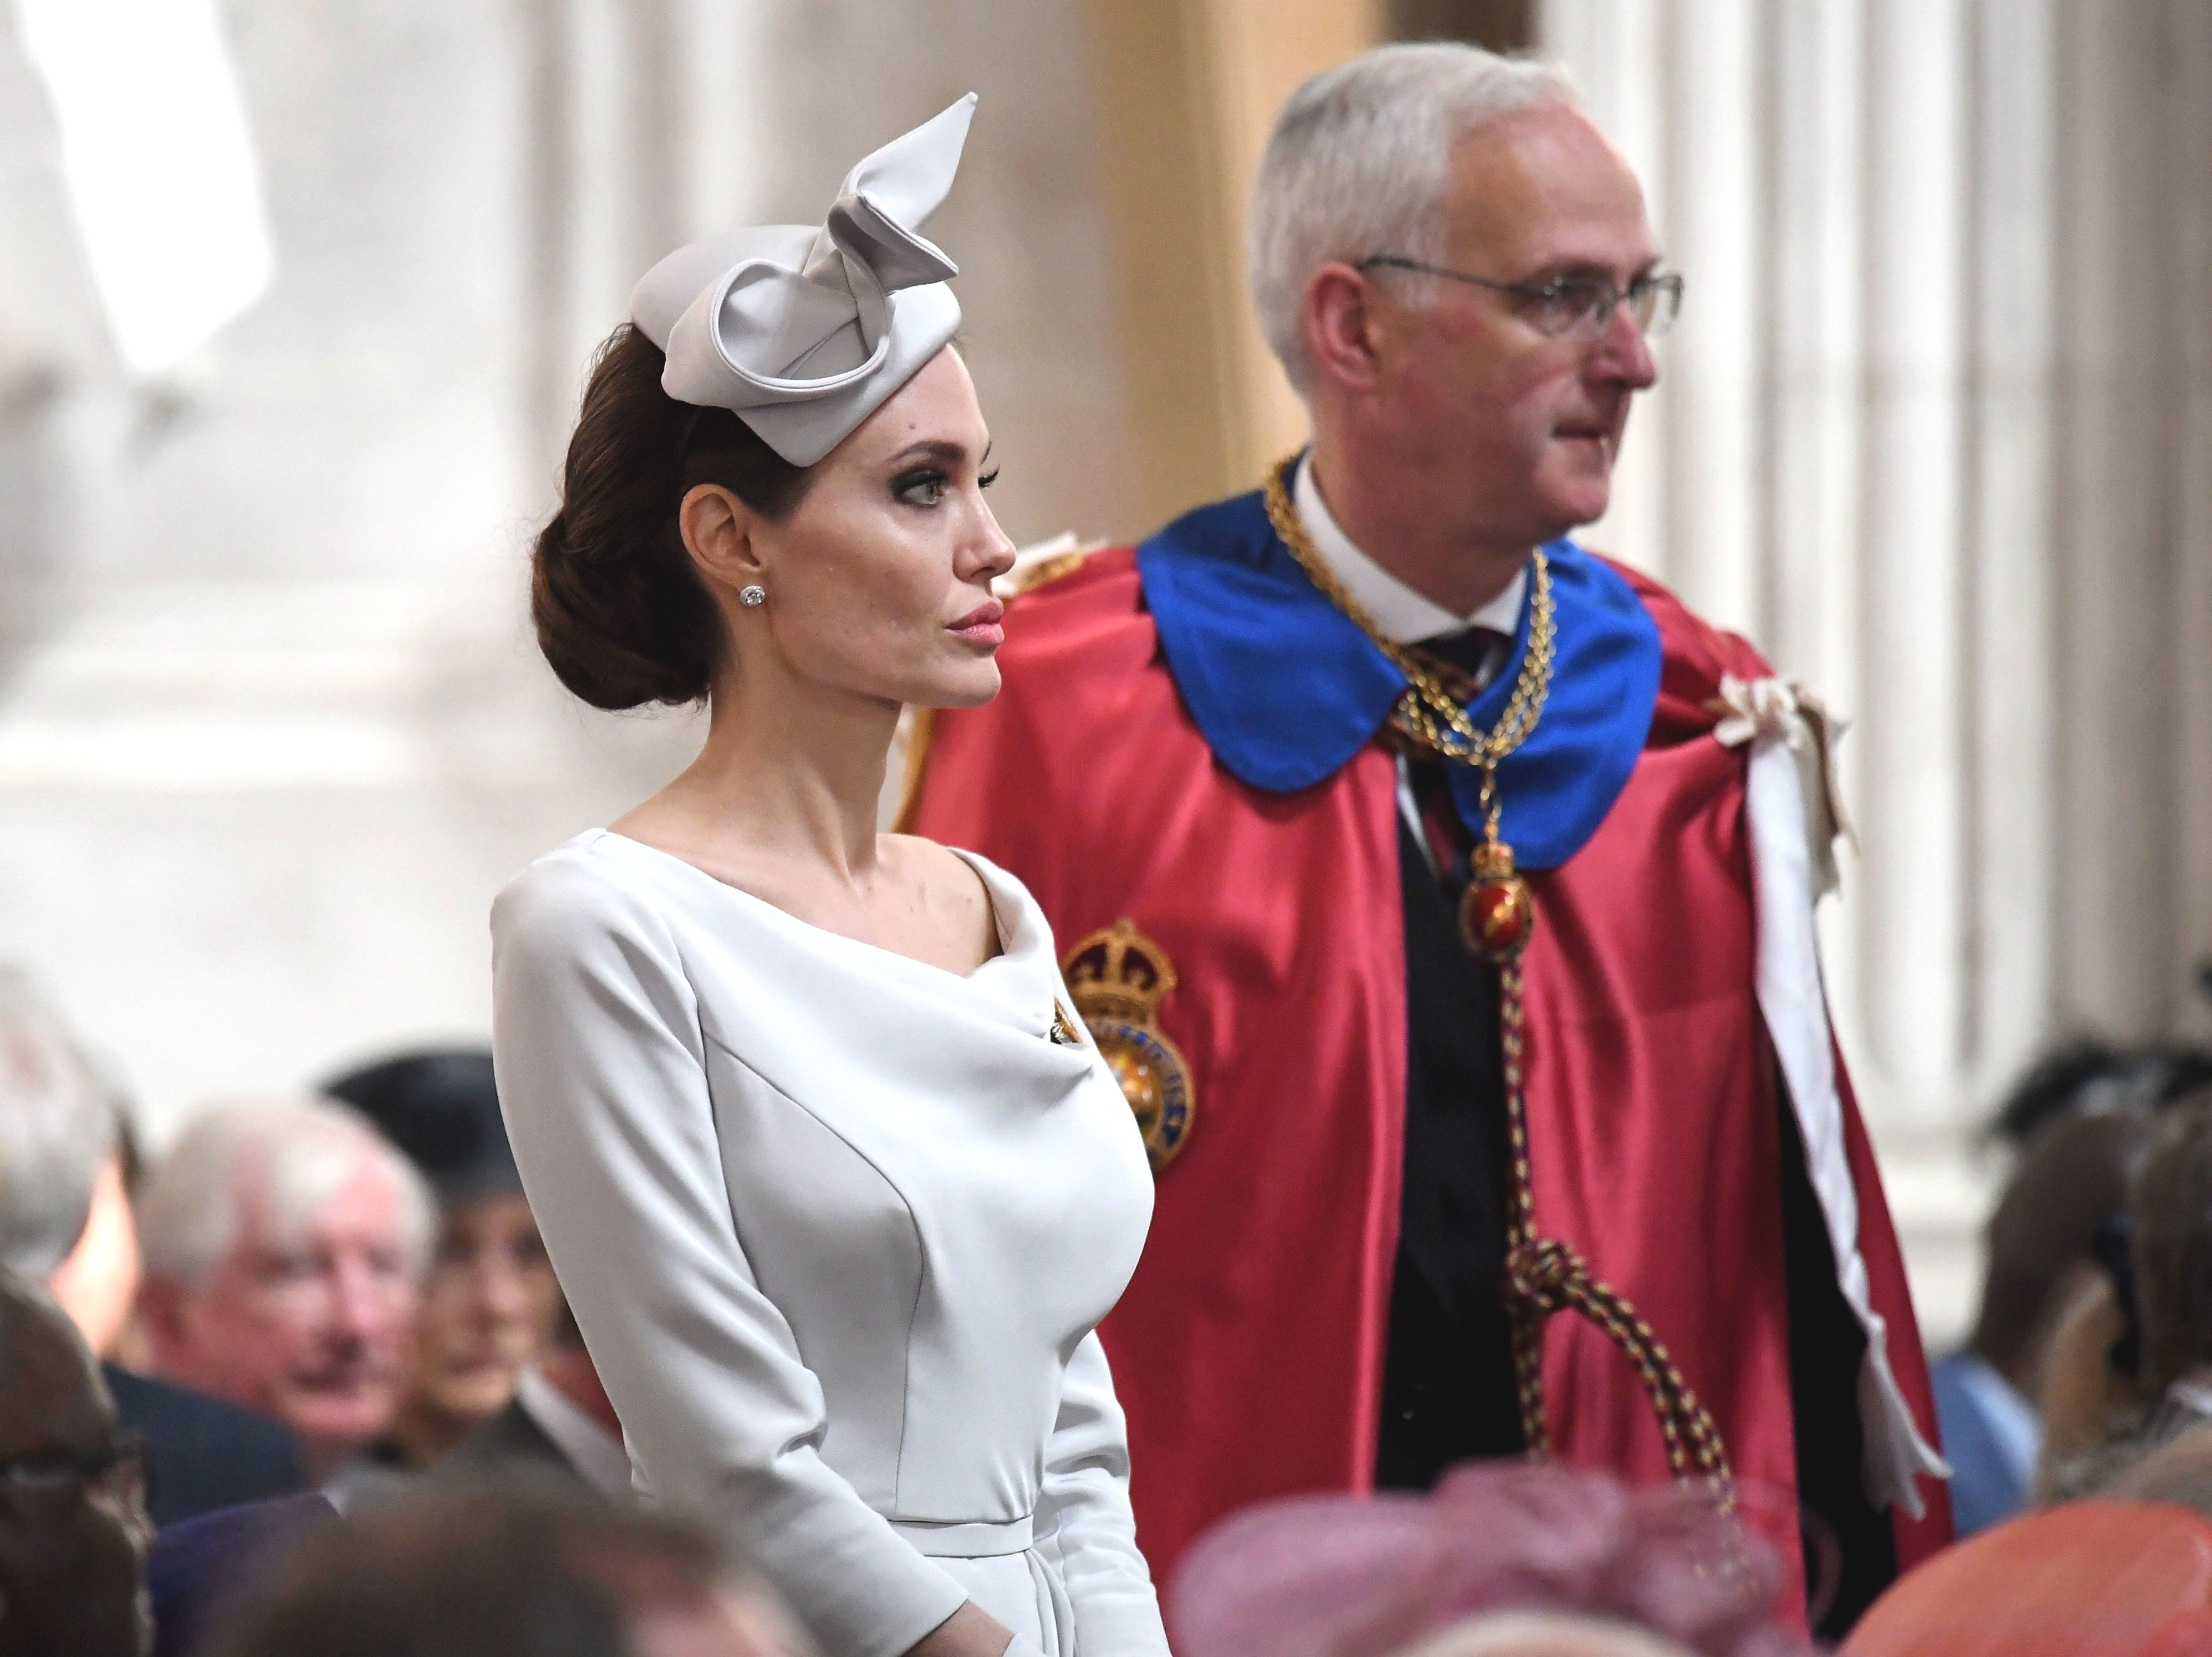 Angelina Jolie Gets Emotional at London War Memorial in Behind-the-Scenes Photos from Her Royal Event